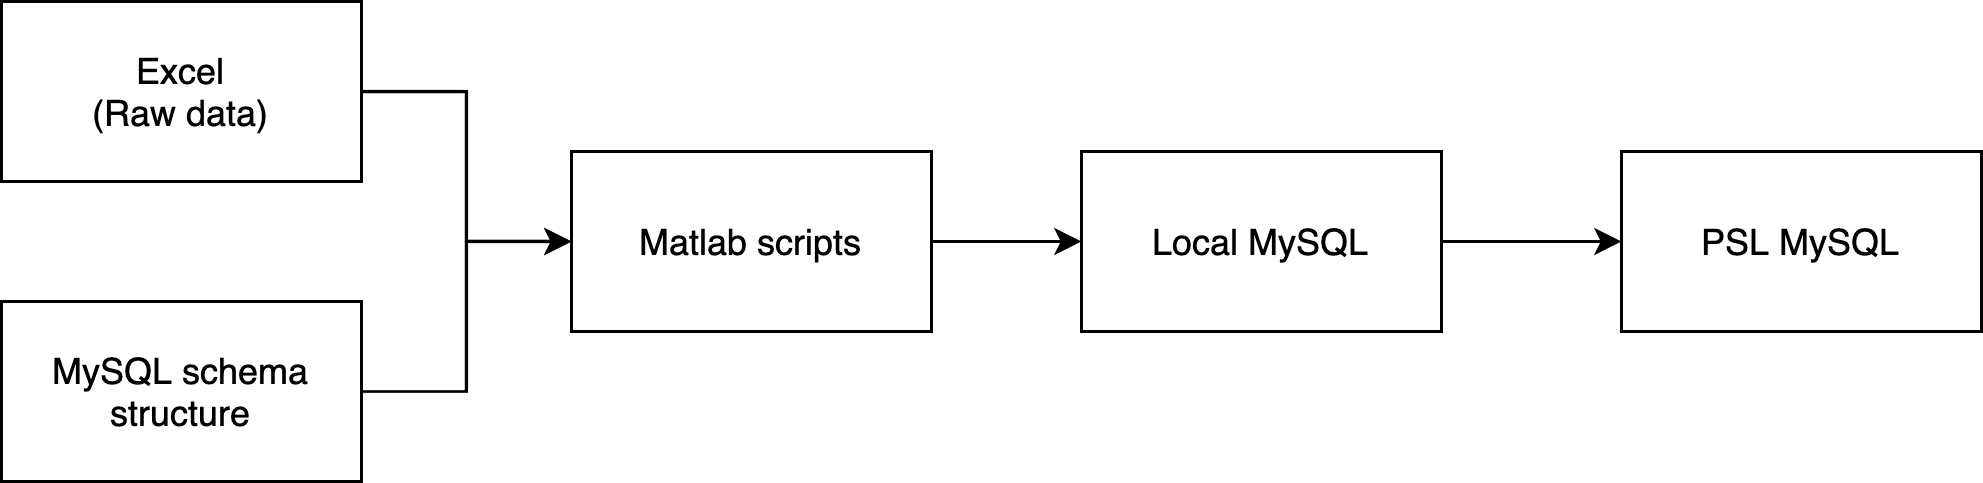 docs/source/images/input-DB-workflow.png